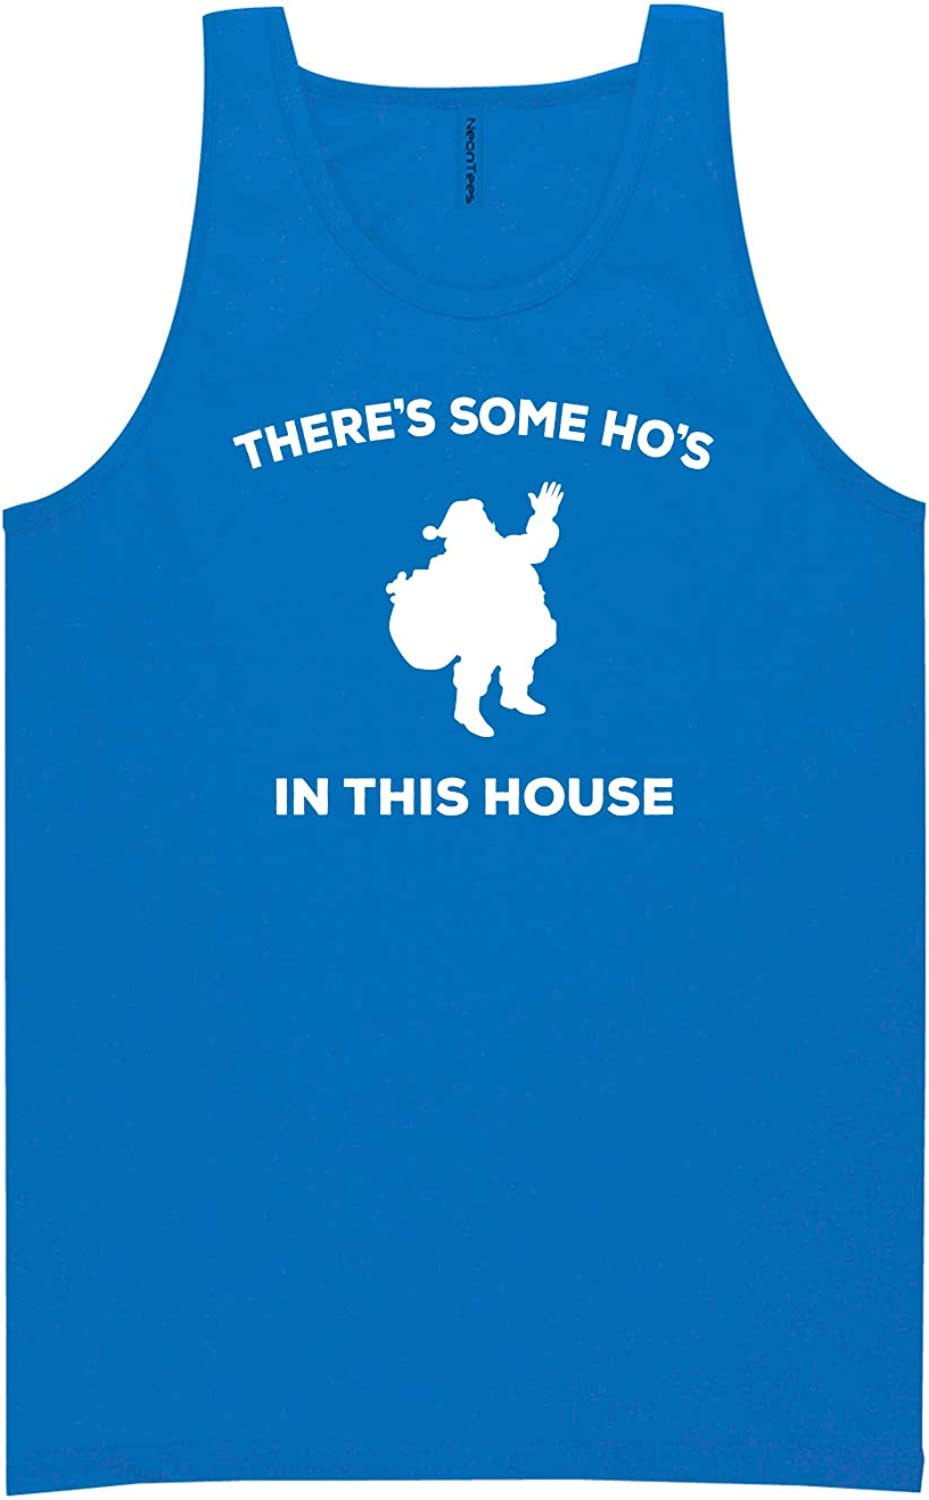 There's Some Ho's in This House Neon Blue Tank Top - XX-Large